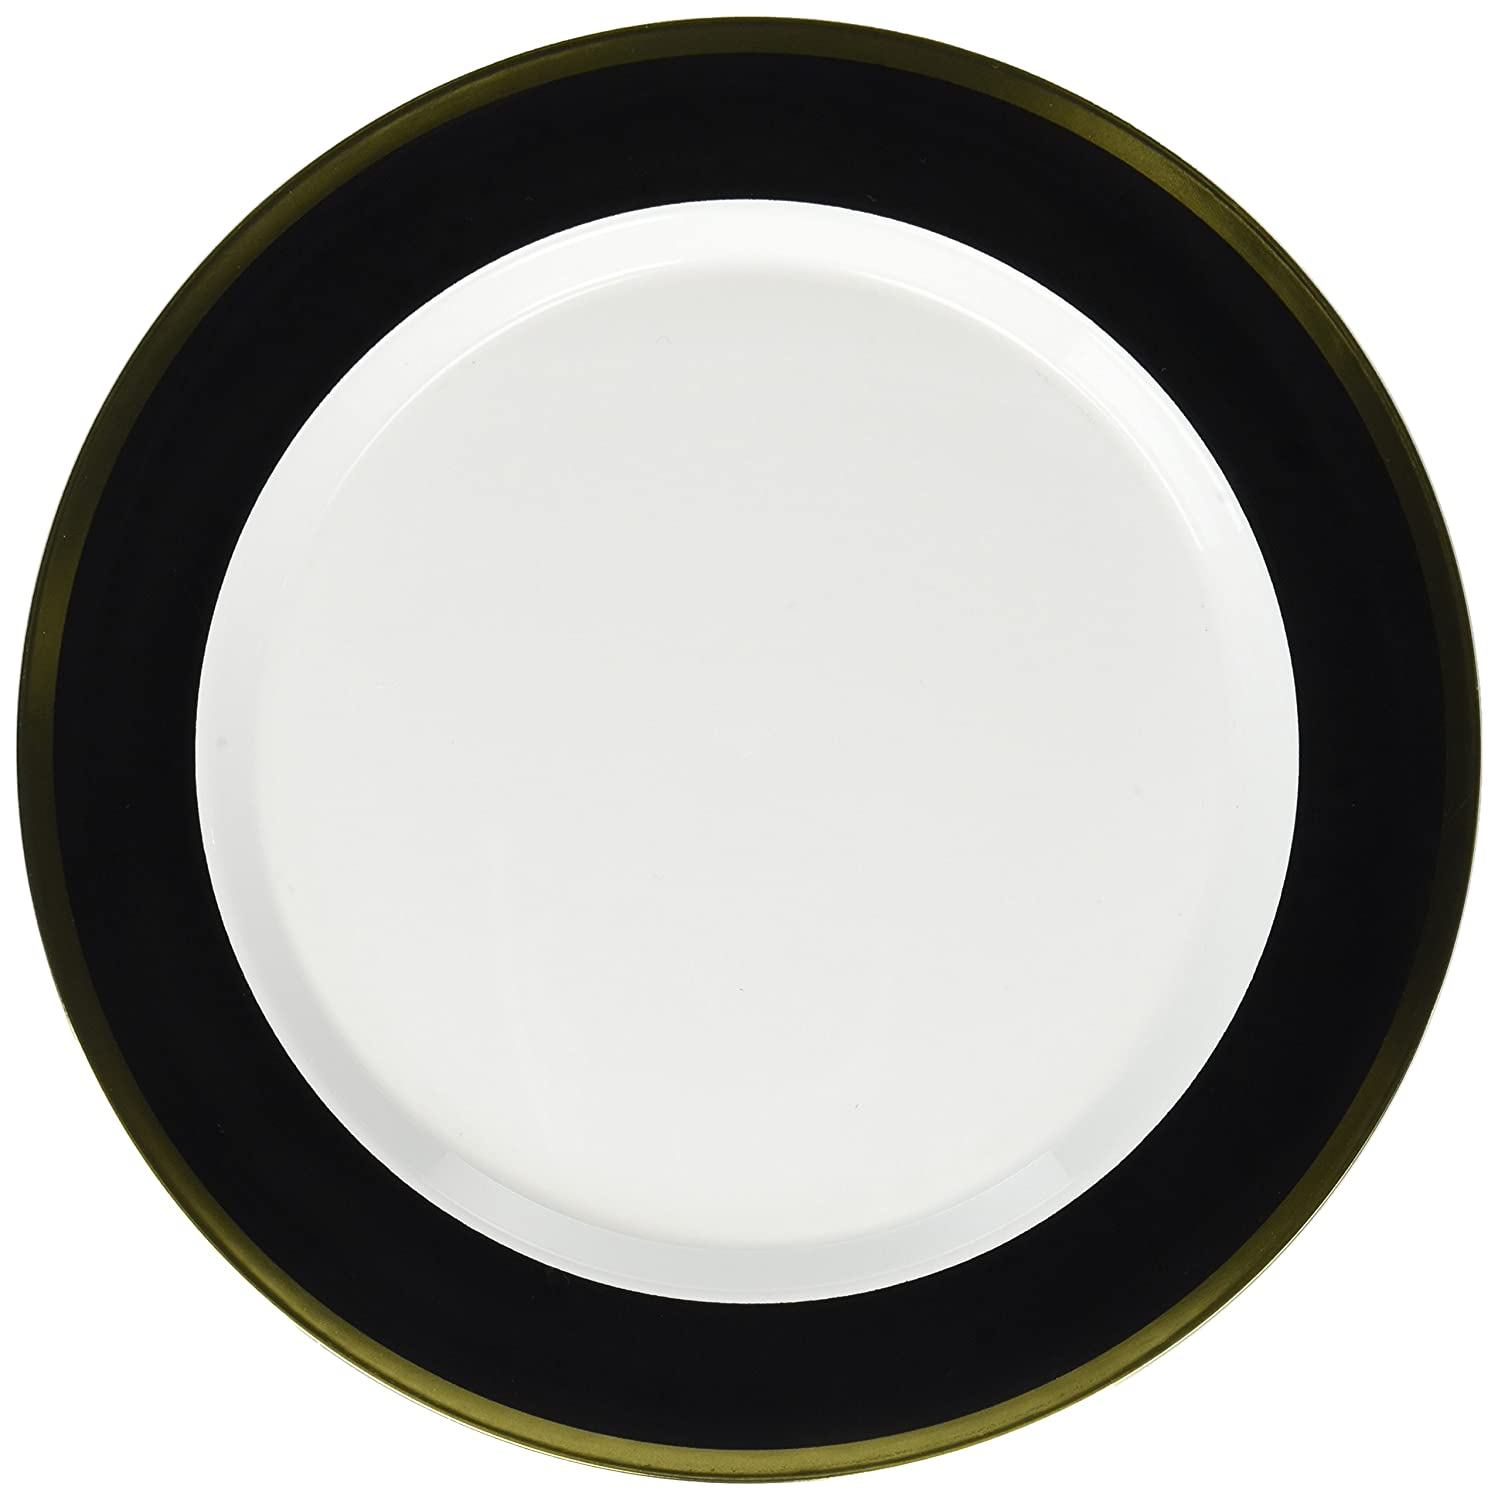 Pack of 10 Party Supply Amscan 430583.10 White//Jet Black Premium Plastic Round Plates 10.25